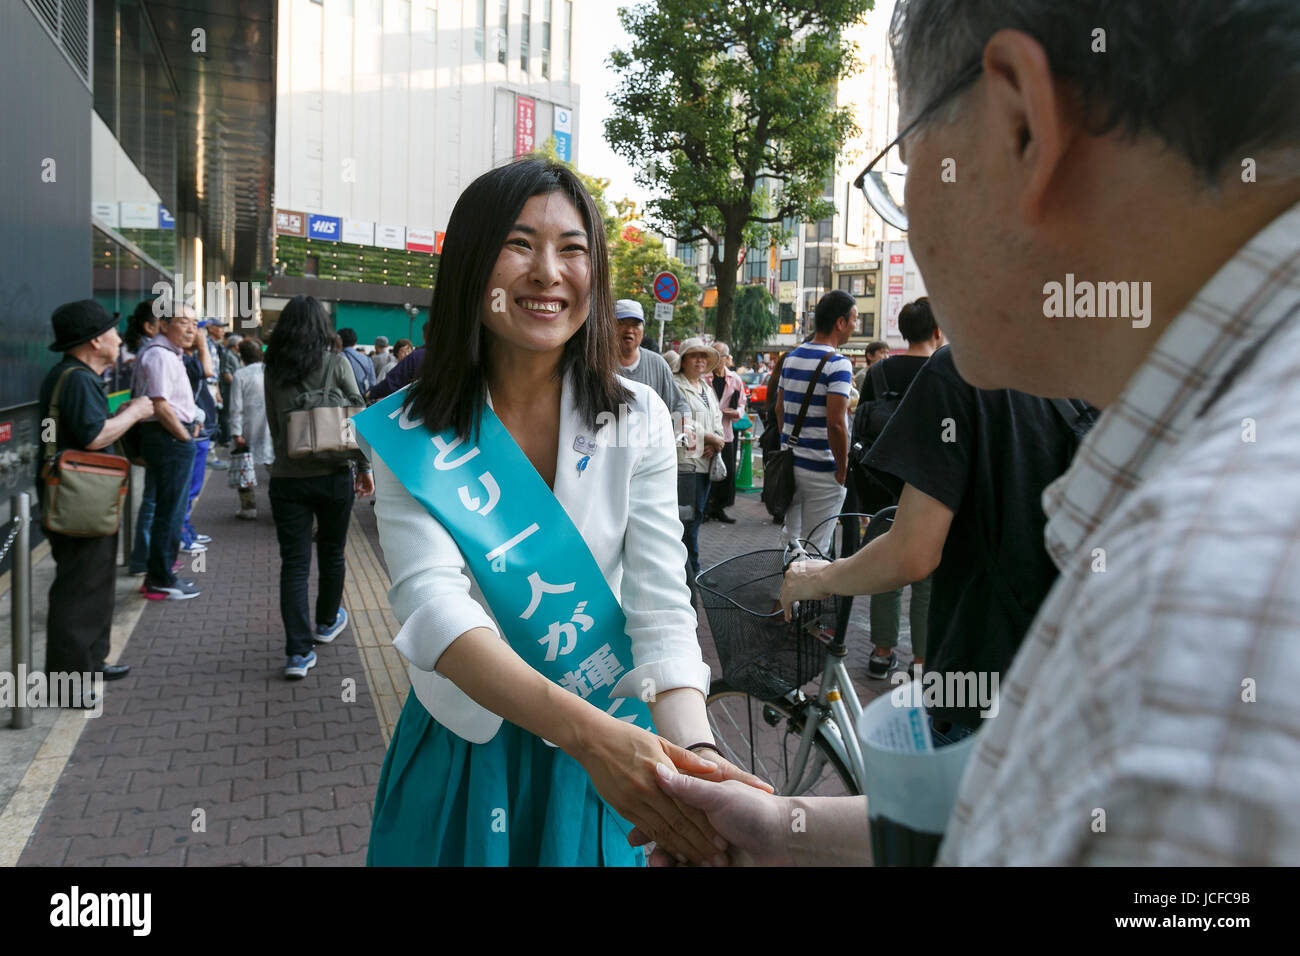 Tokyo, Japan. 16th June, 2017. Candidate Ai Mori shakes hands with supporters while campaigning for Tokyo's - Stock Image